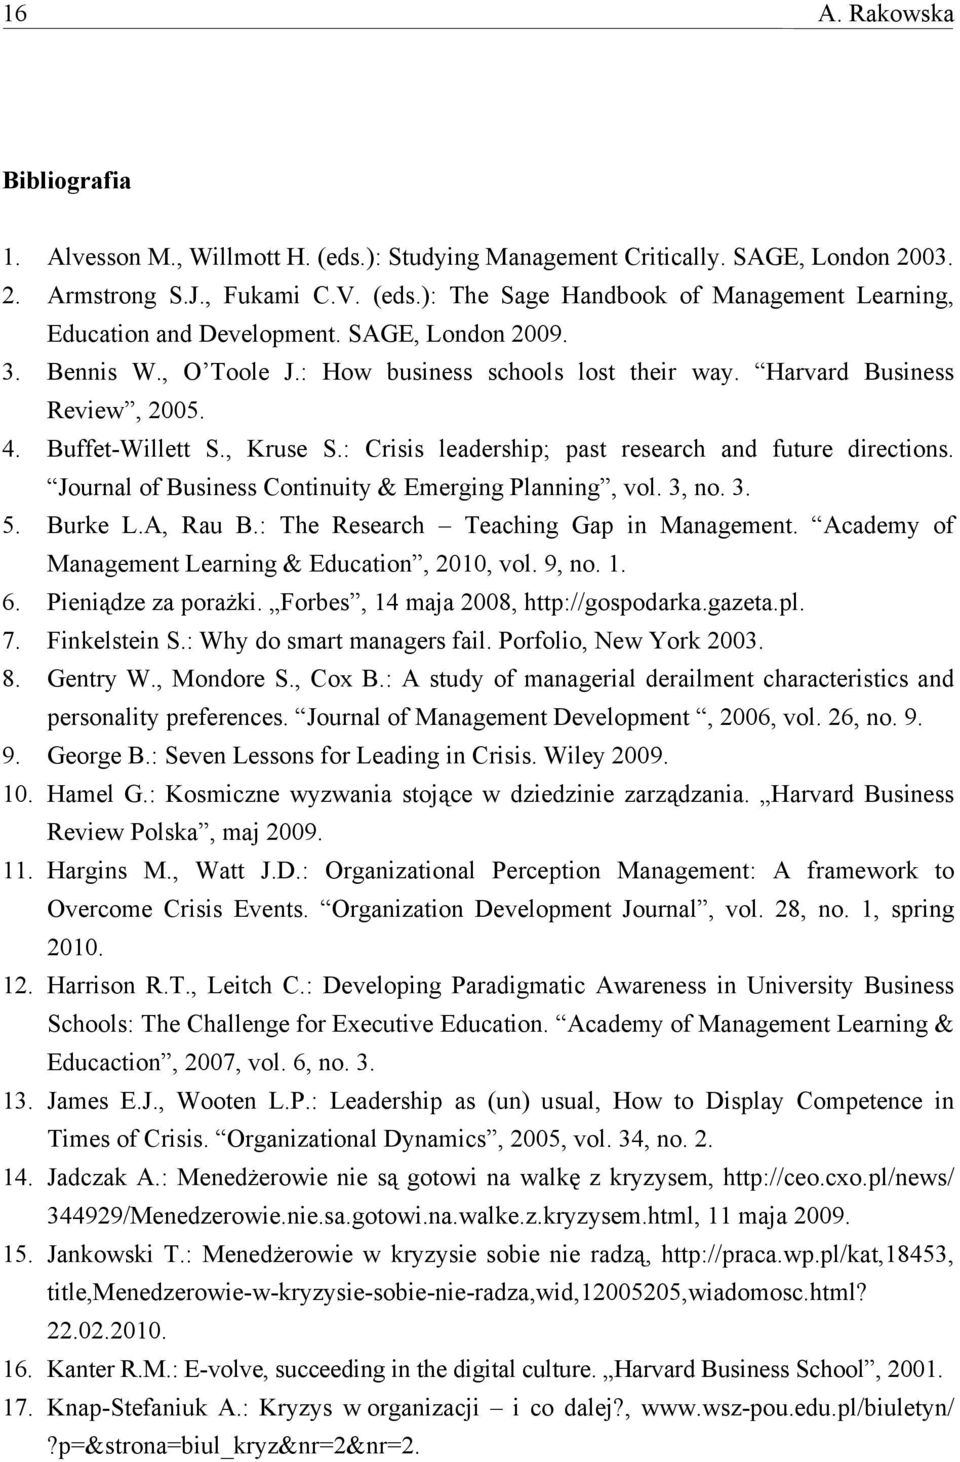 Journal of Business Continuity & Emerging Planning, vol. 3, no. 3. 5. Burke L.A, Rau B.: The Research Teaching Gap in Management. Academy of Management Learning & Education, 2010, vol. 9, no. 1. 6.